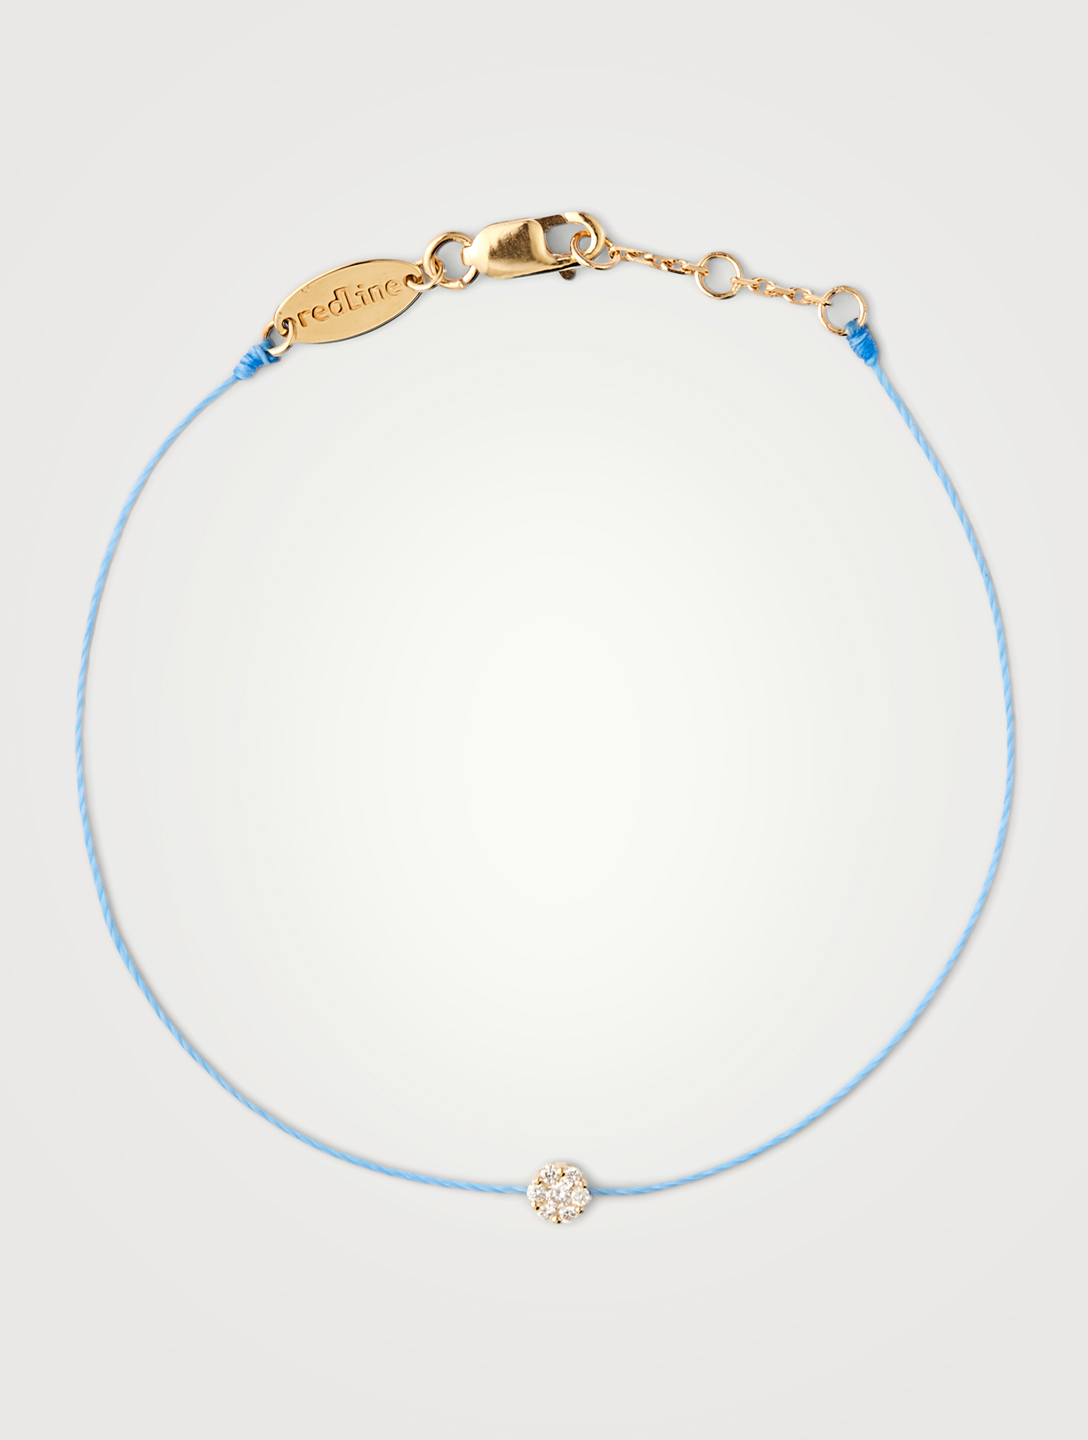 REDLINE Bracelet fil Illusion en or 18 ct avec diamants Femmes Bleu